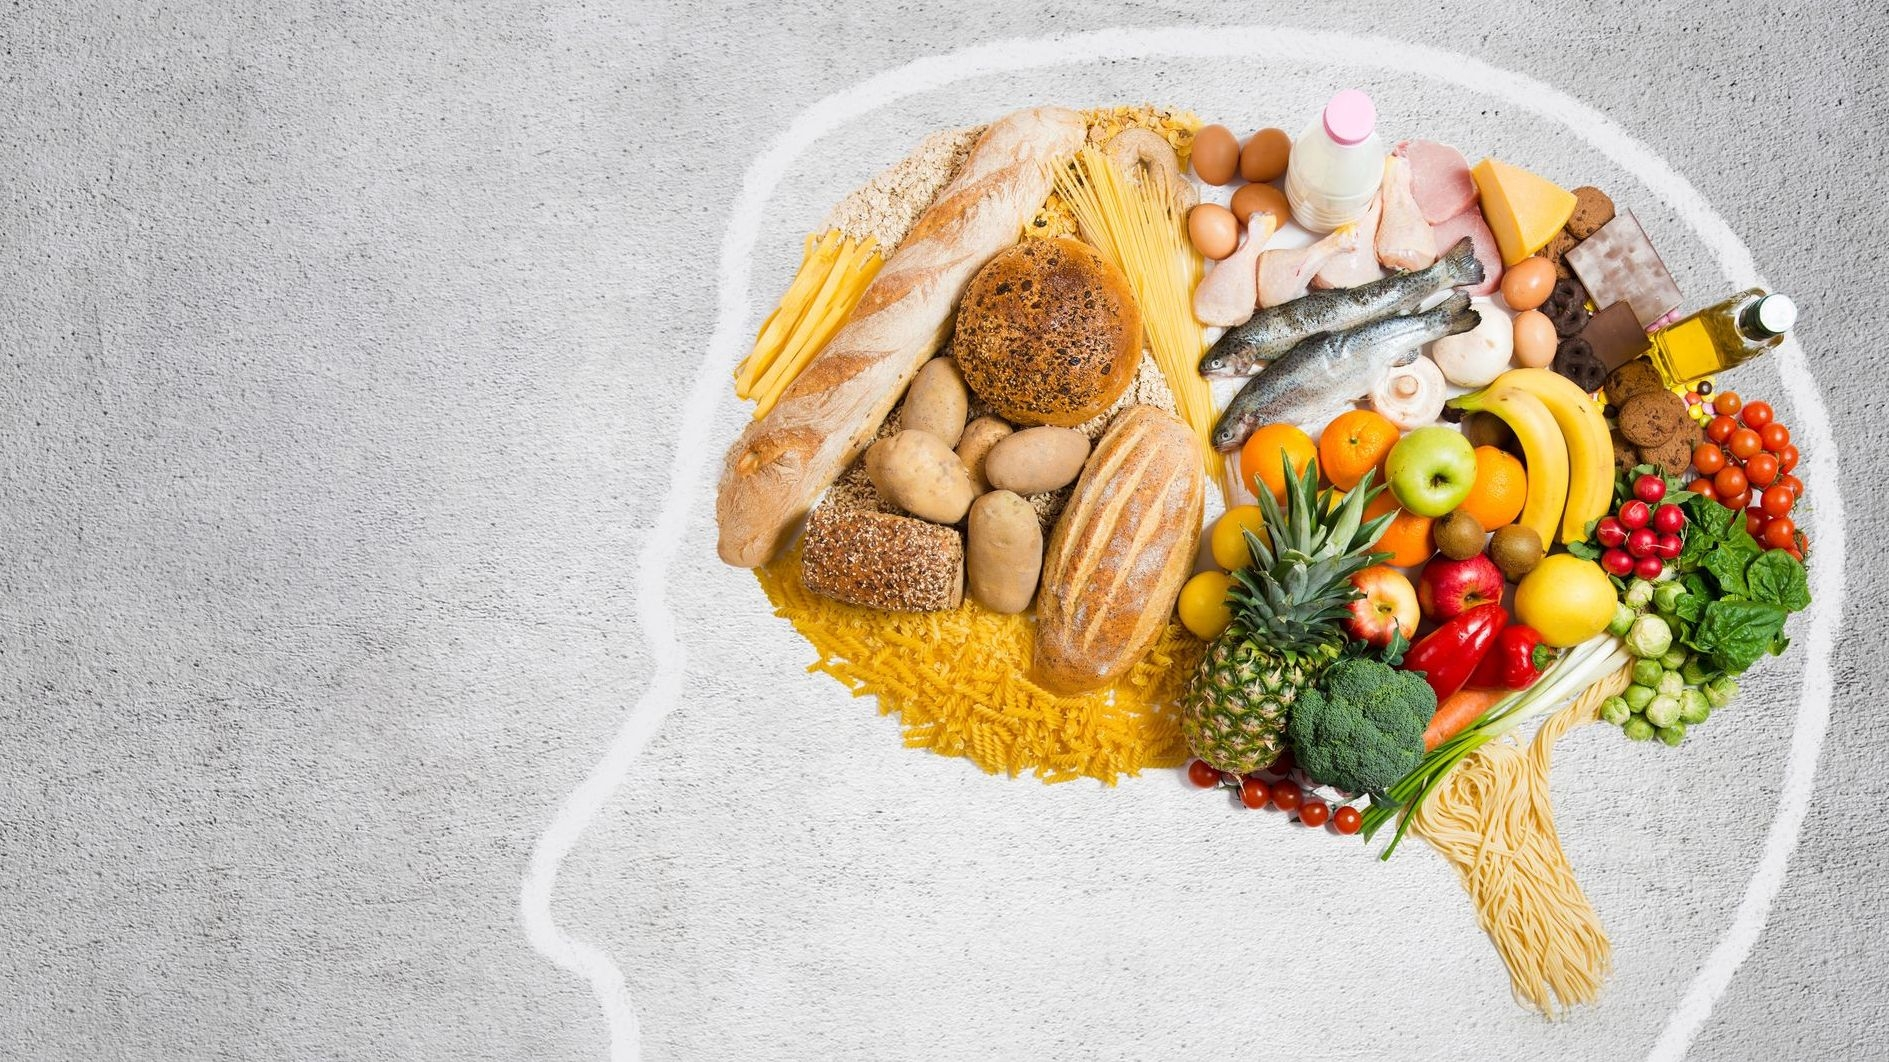 What We Eat Can Have A Direct Impact on Our Mental Health